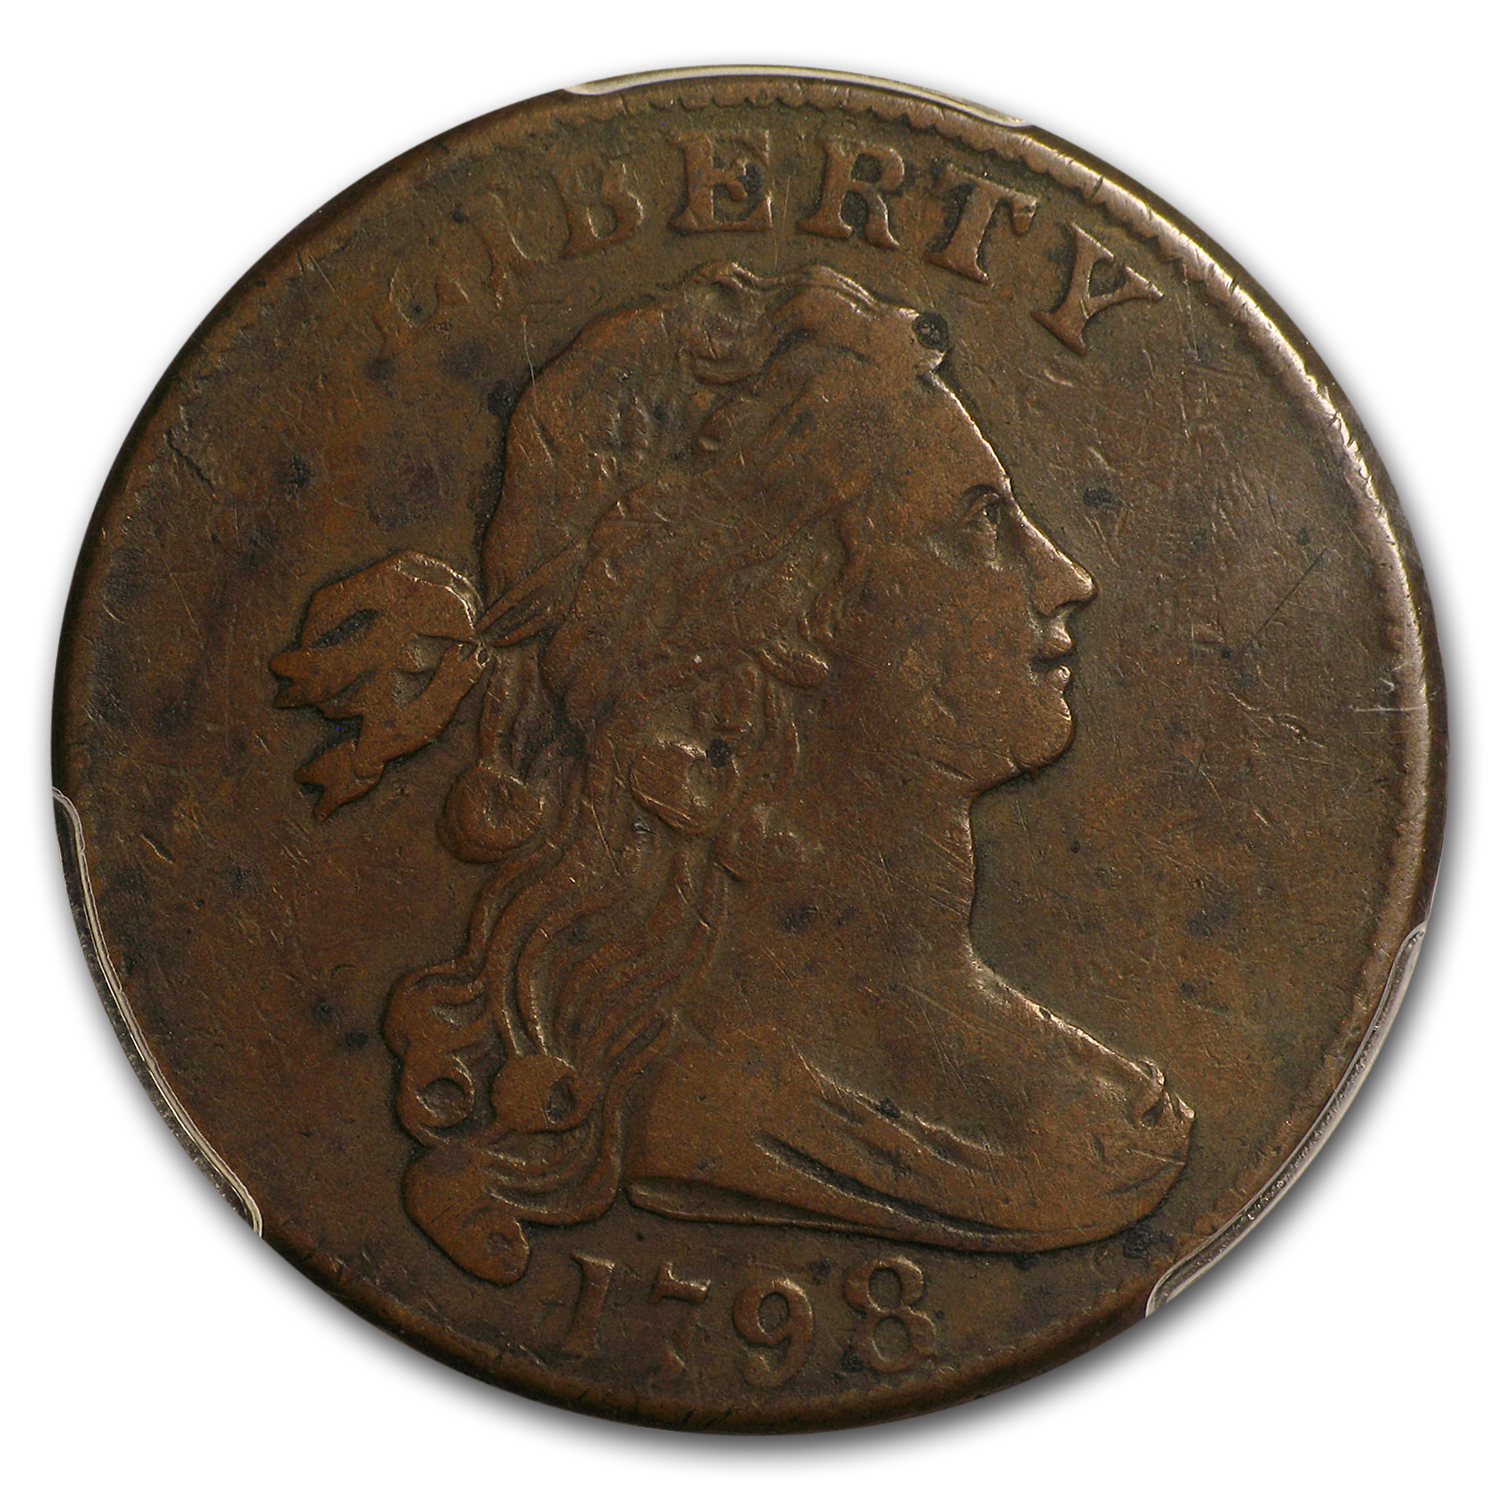 1798 Large Cent 2nd Hairstyle VF-20 PCGS (S.166)